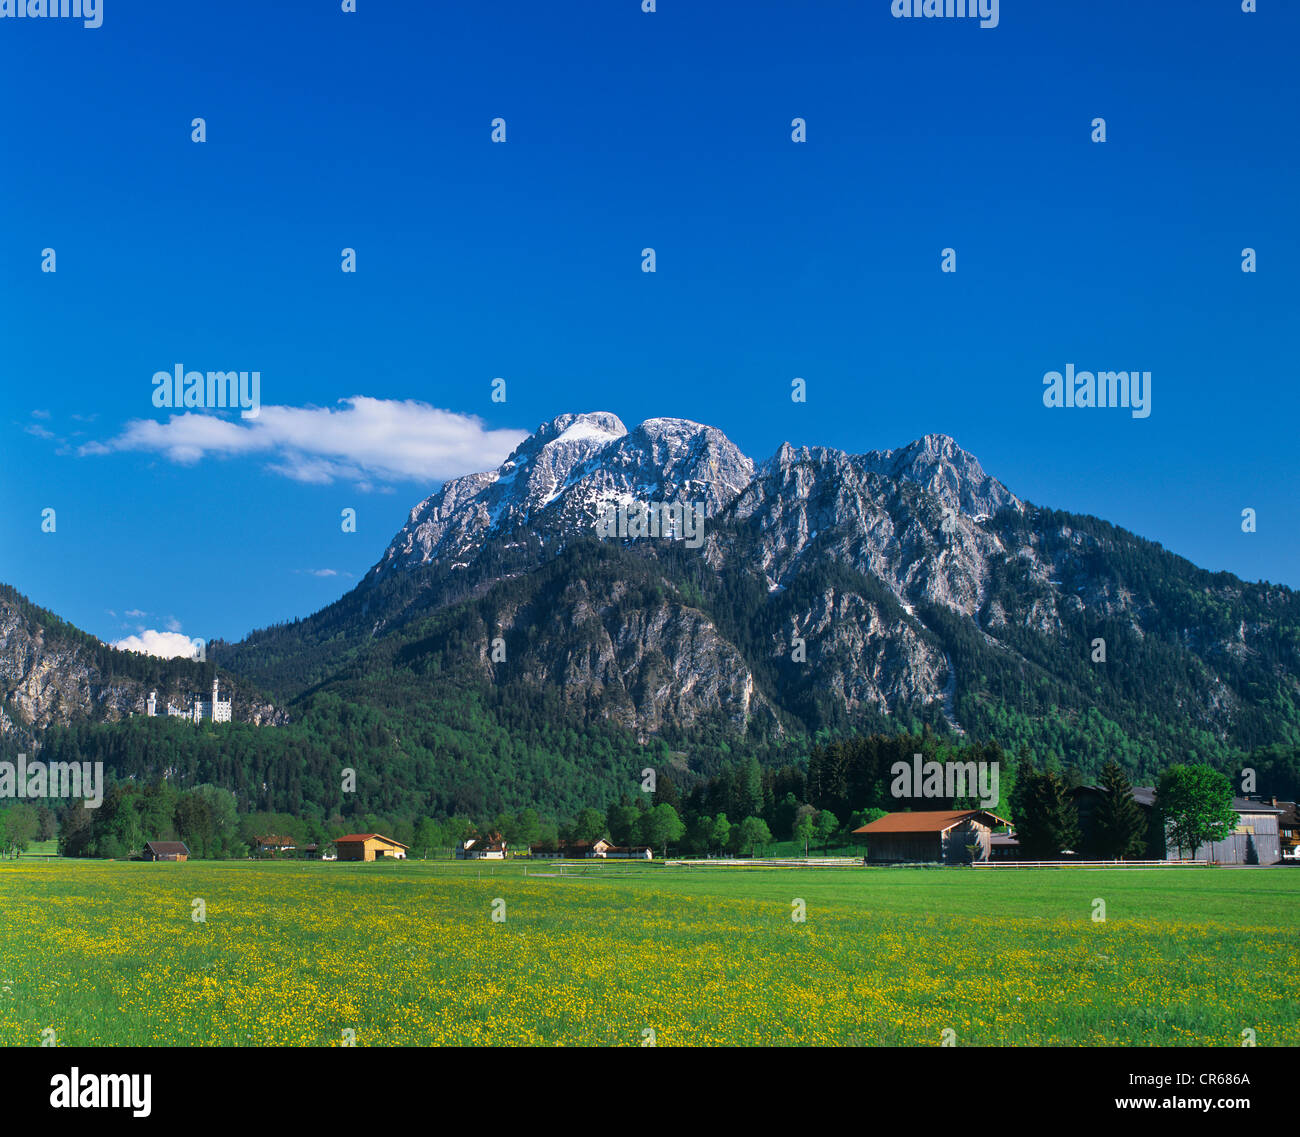 Schwangau, Allgaeu panorama with mountains and hut, Schloss Neuschwanstein Castle, left, Bavaria, Germany, Europe - Stock Image